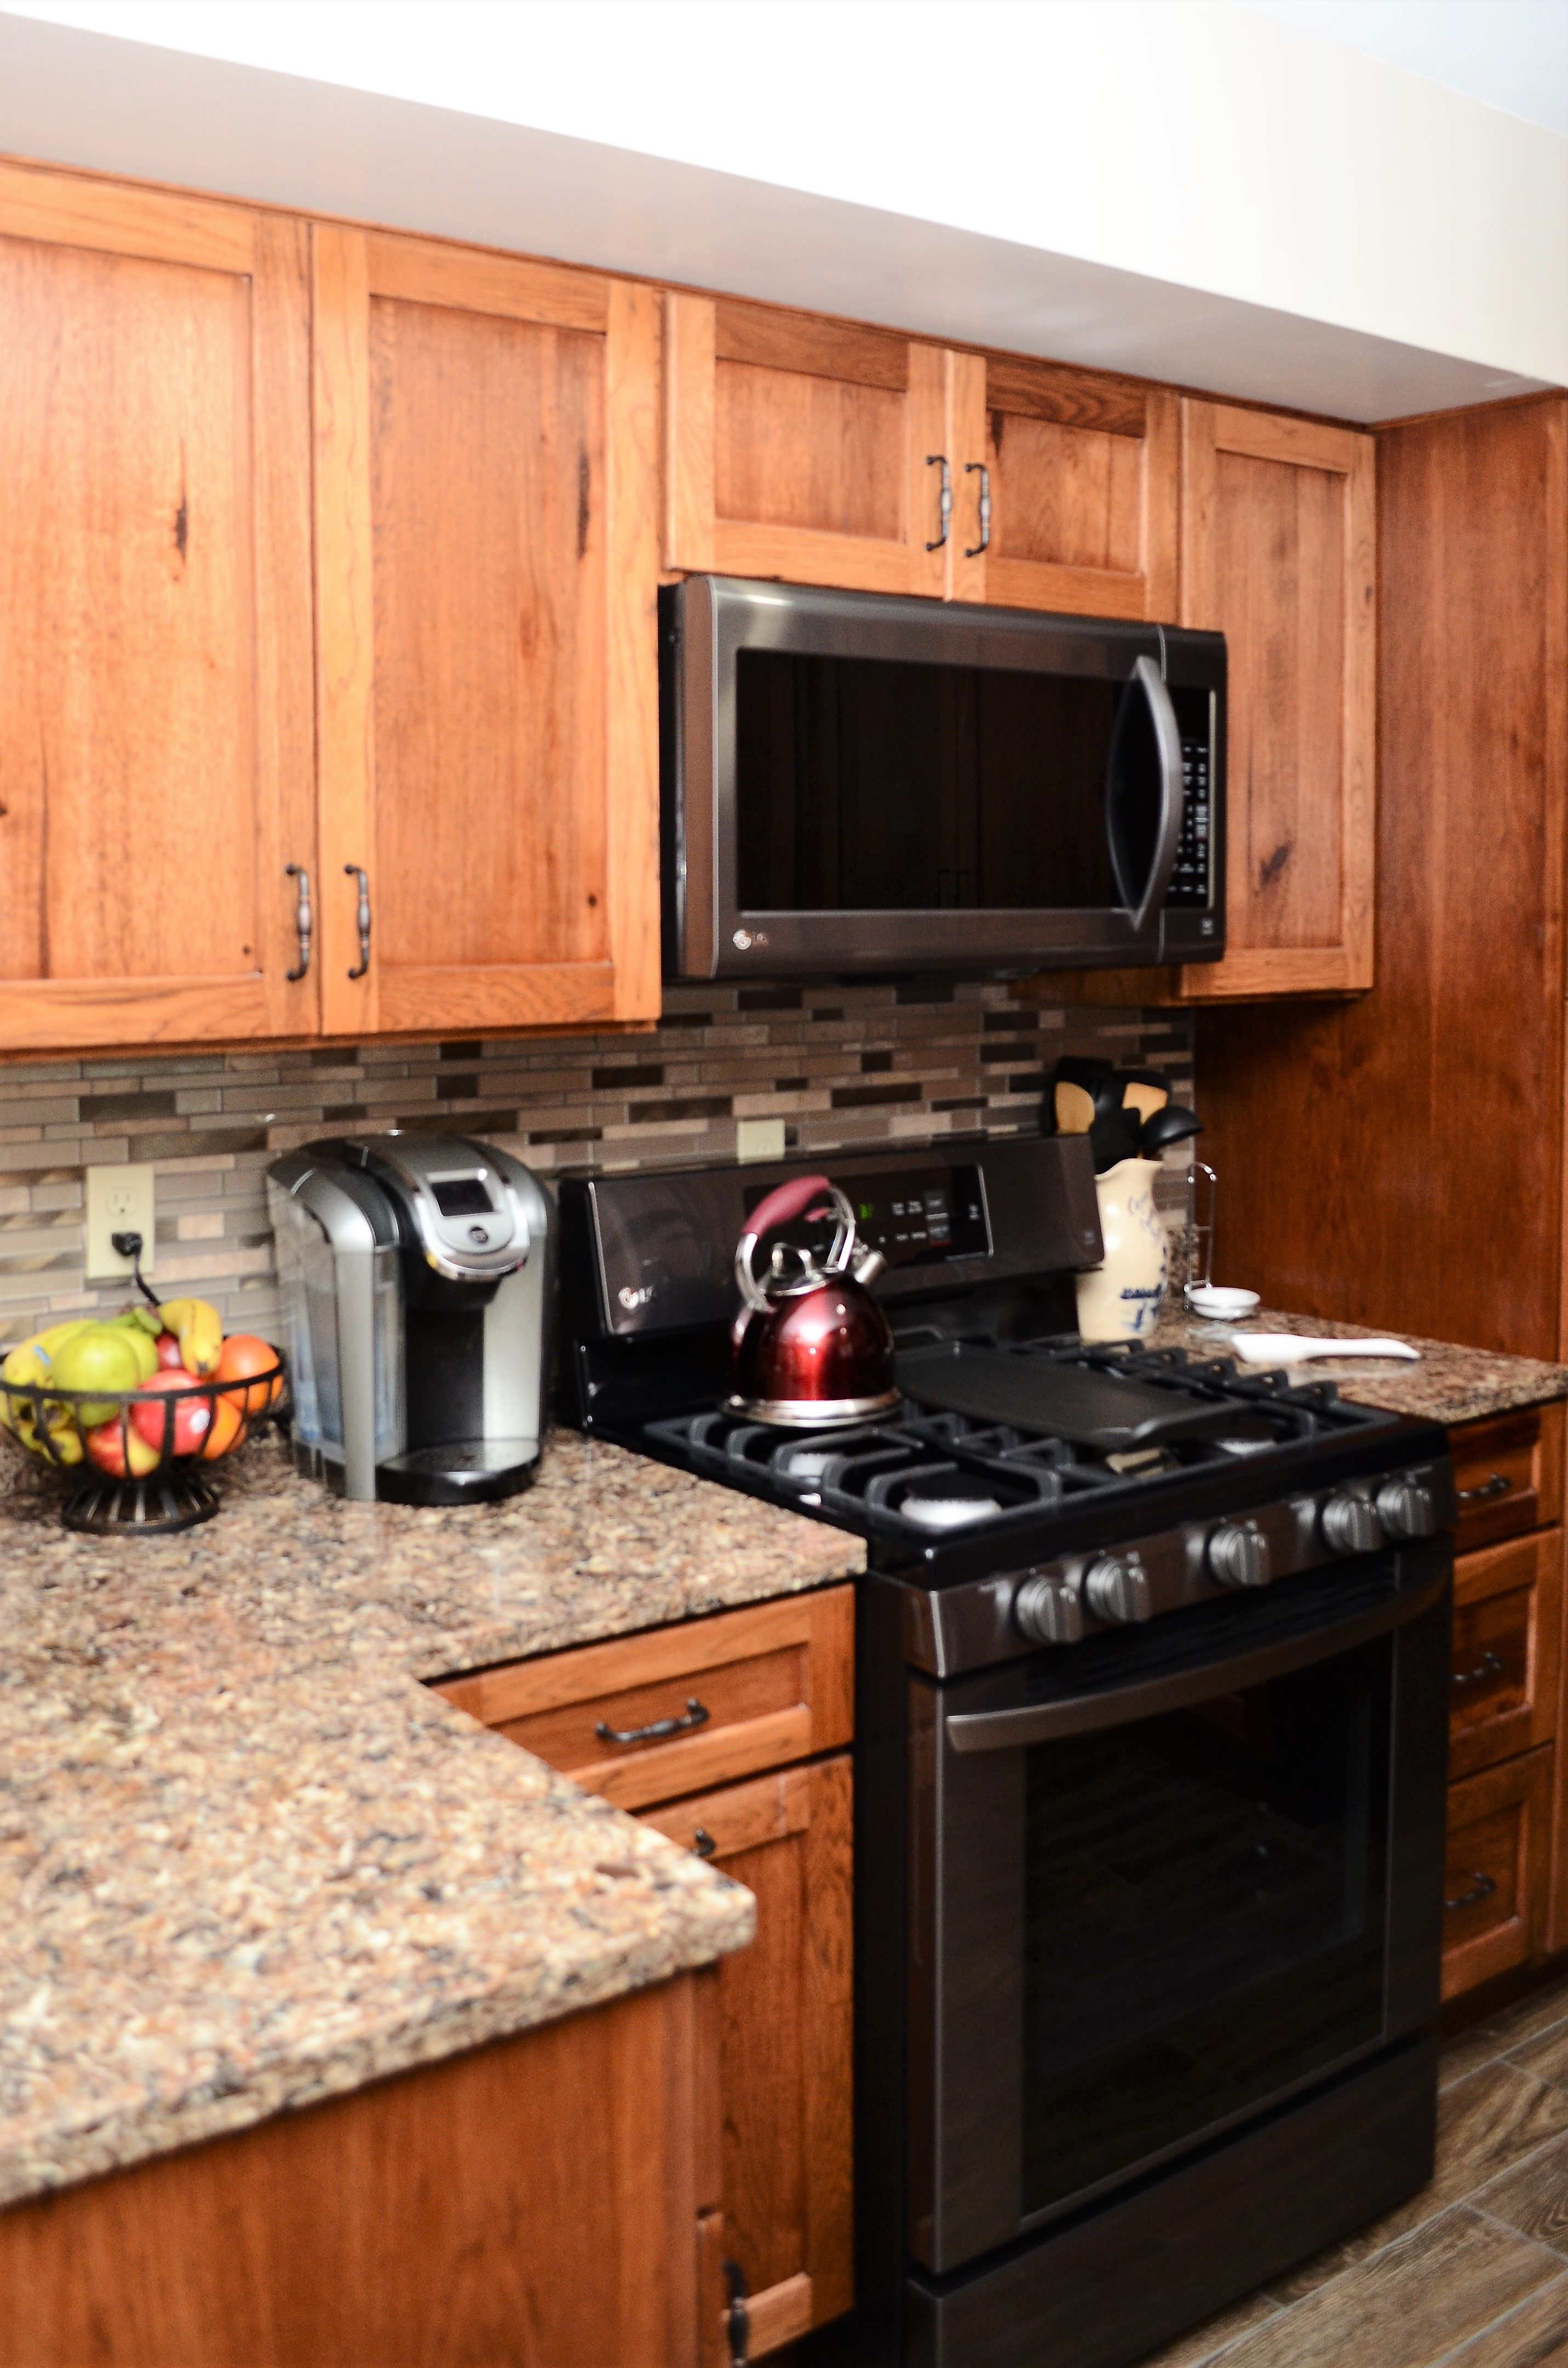 Haas Signature Rustic Hickory Pecan Kitchen Remodel Hickory Cabinets Cabinetry